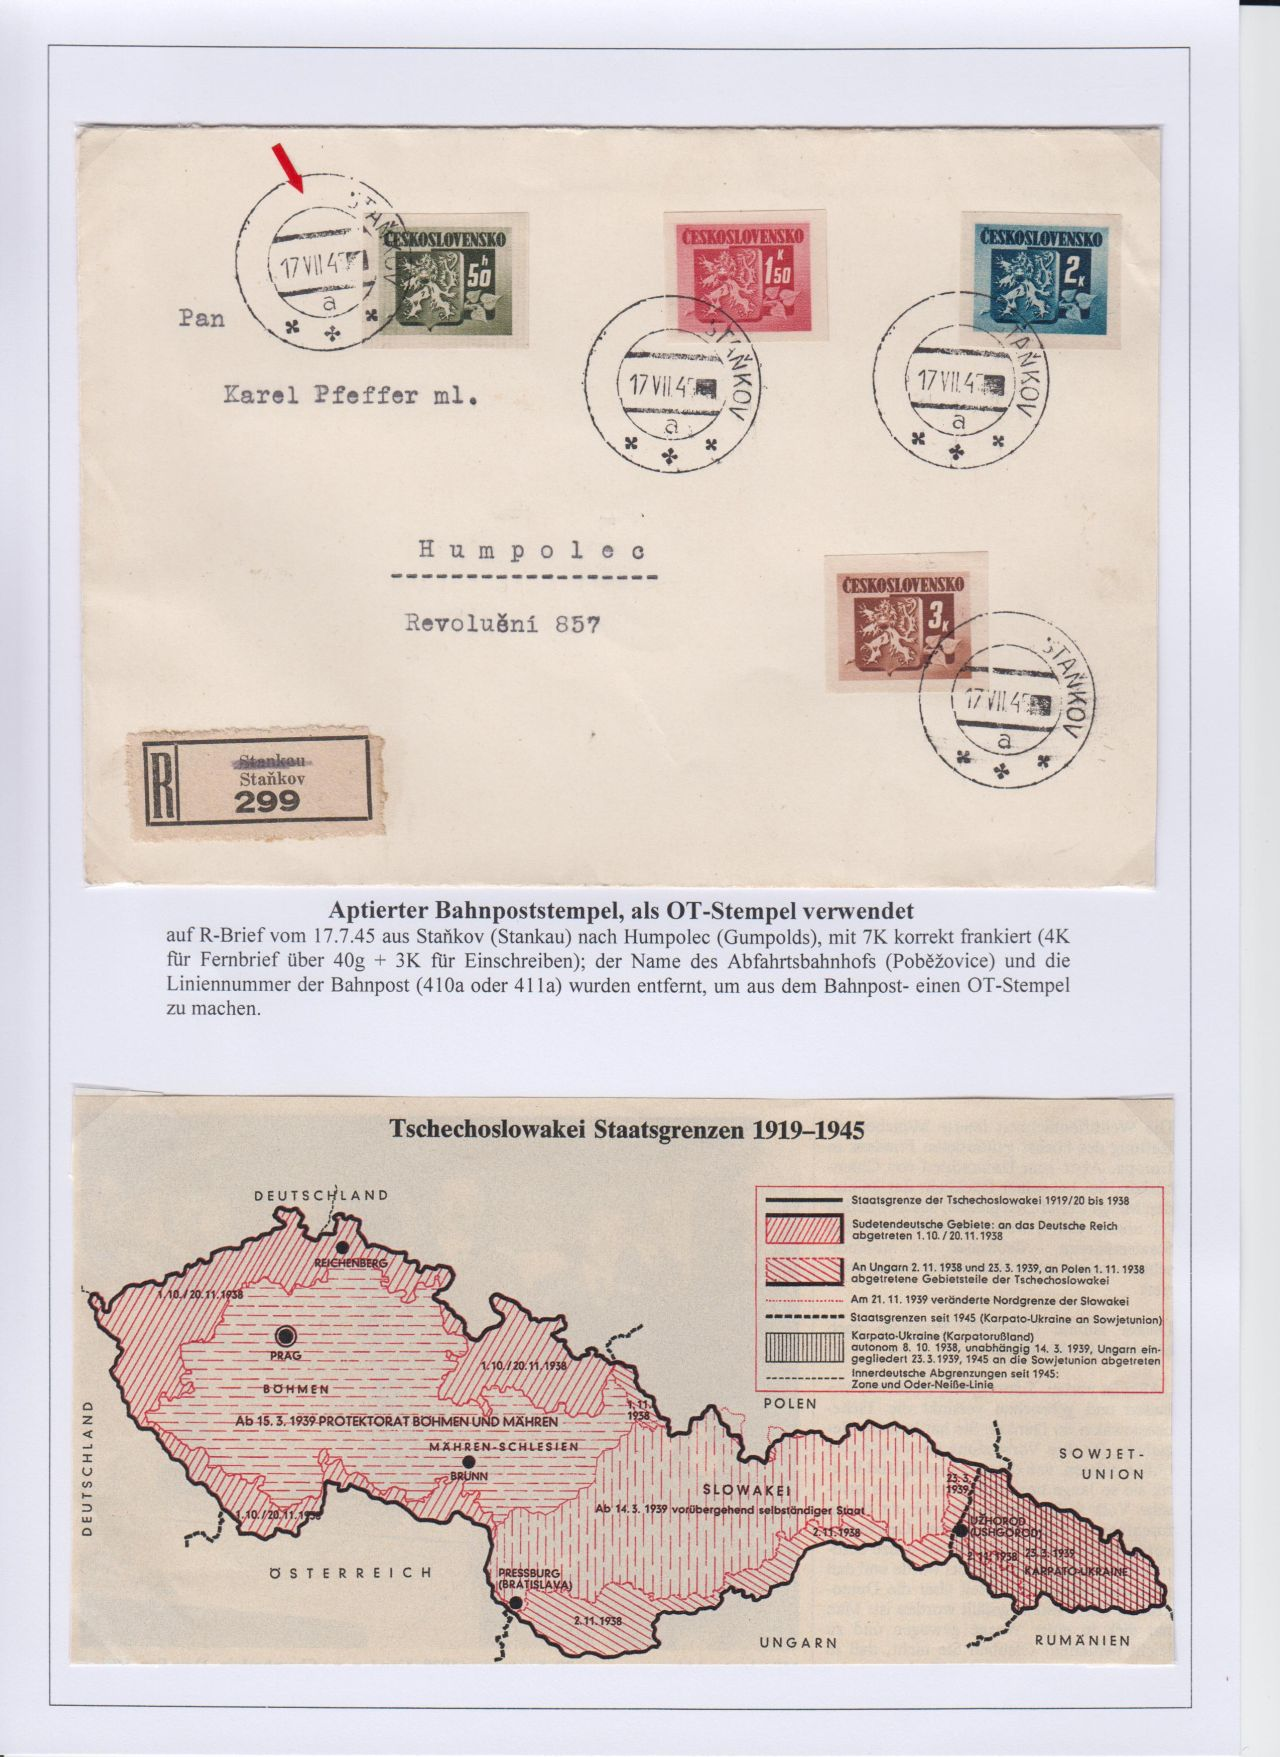 Philatelic Exhibit Postmarks In Bohemia And Moravia During The